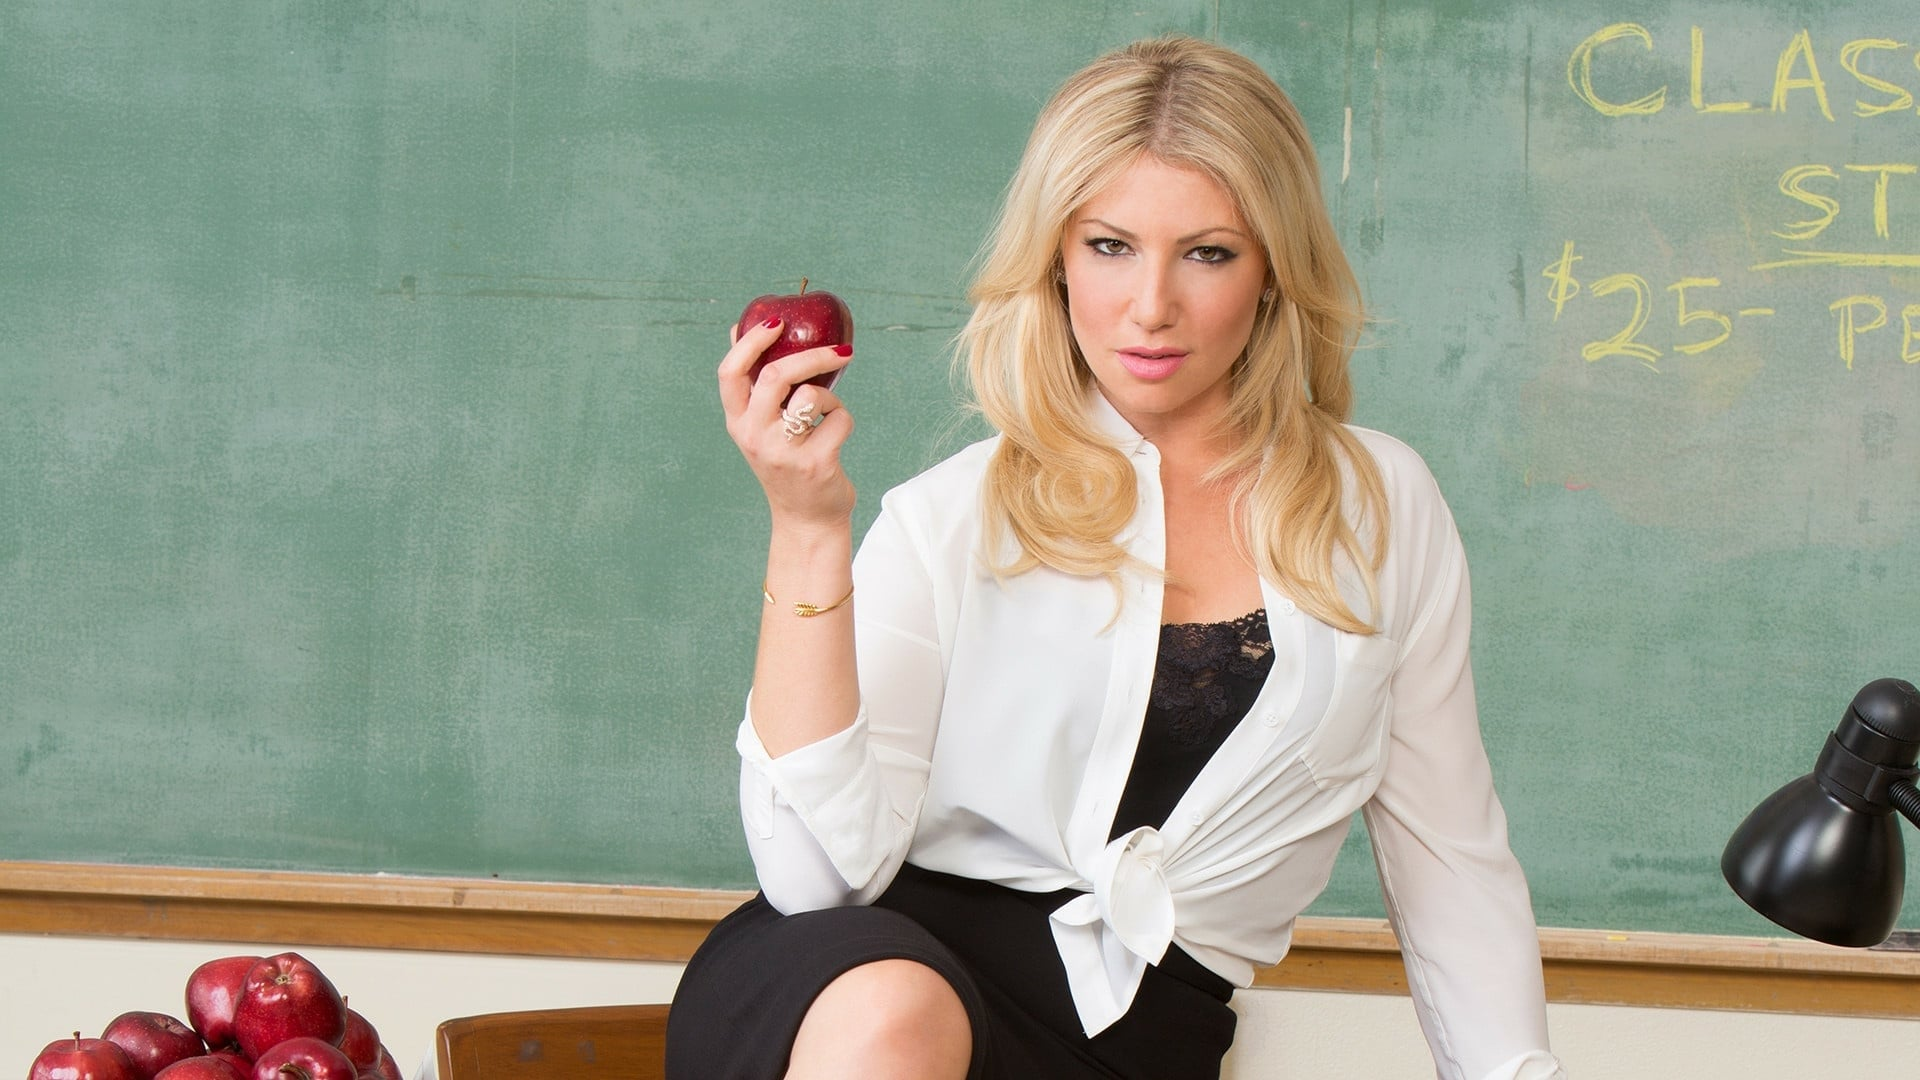 'Bad Teacher' and 'Friends with Better Lives' pulled from schedule